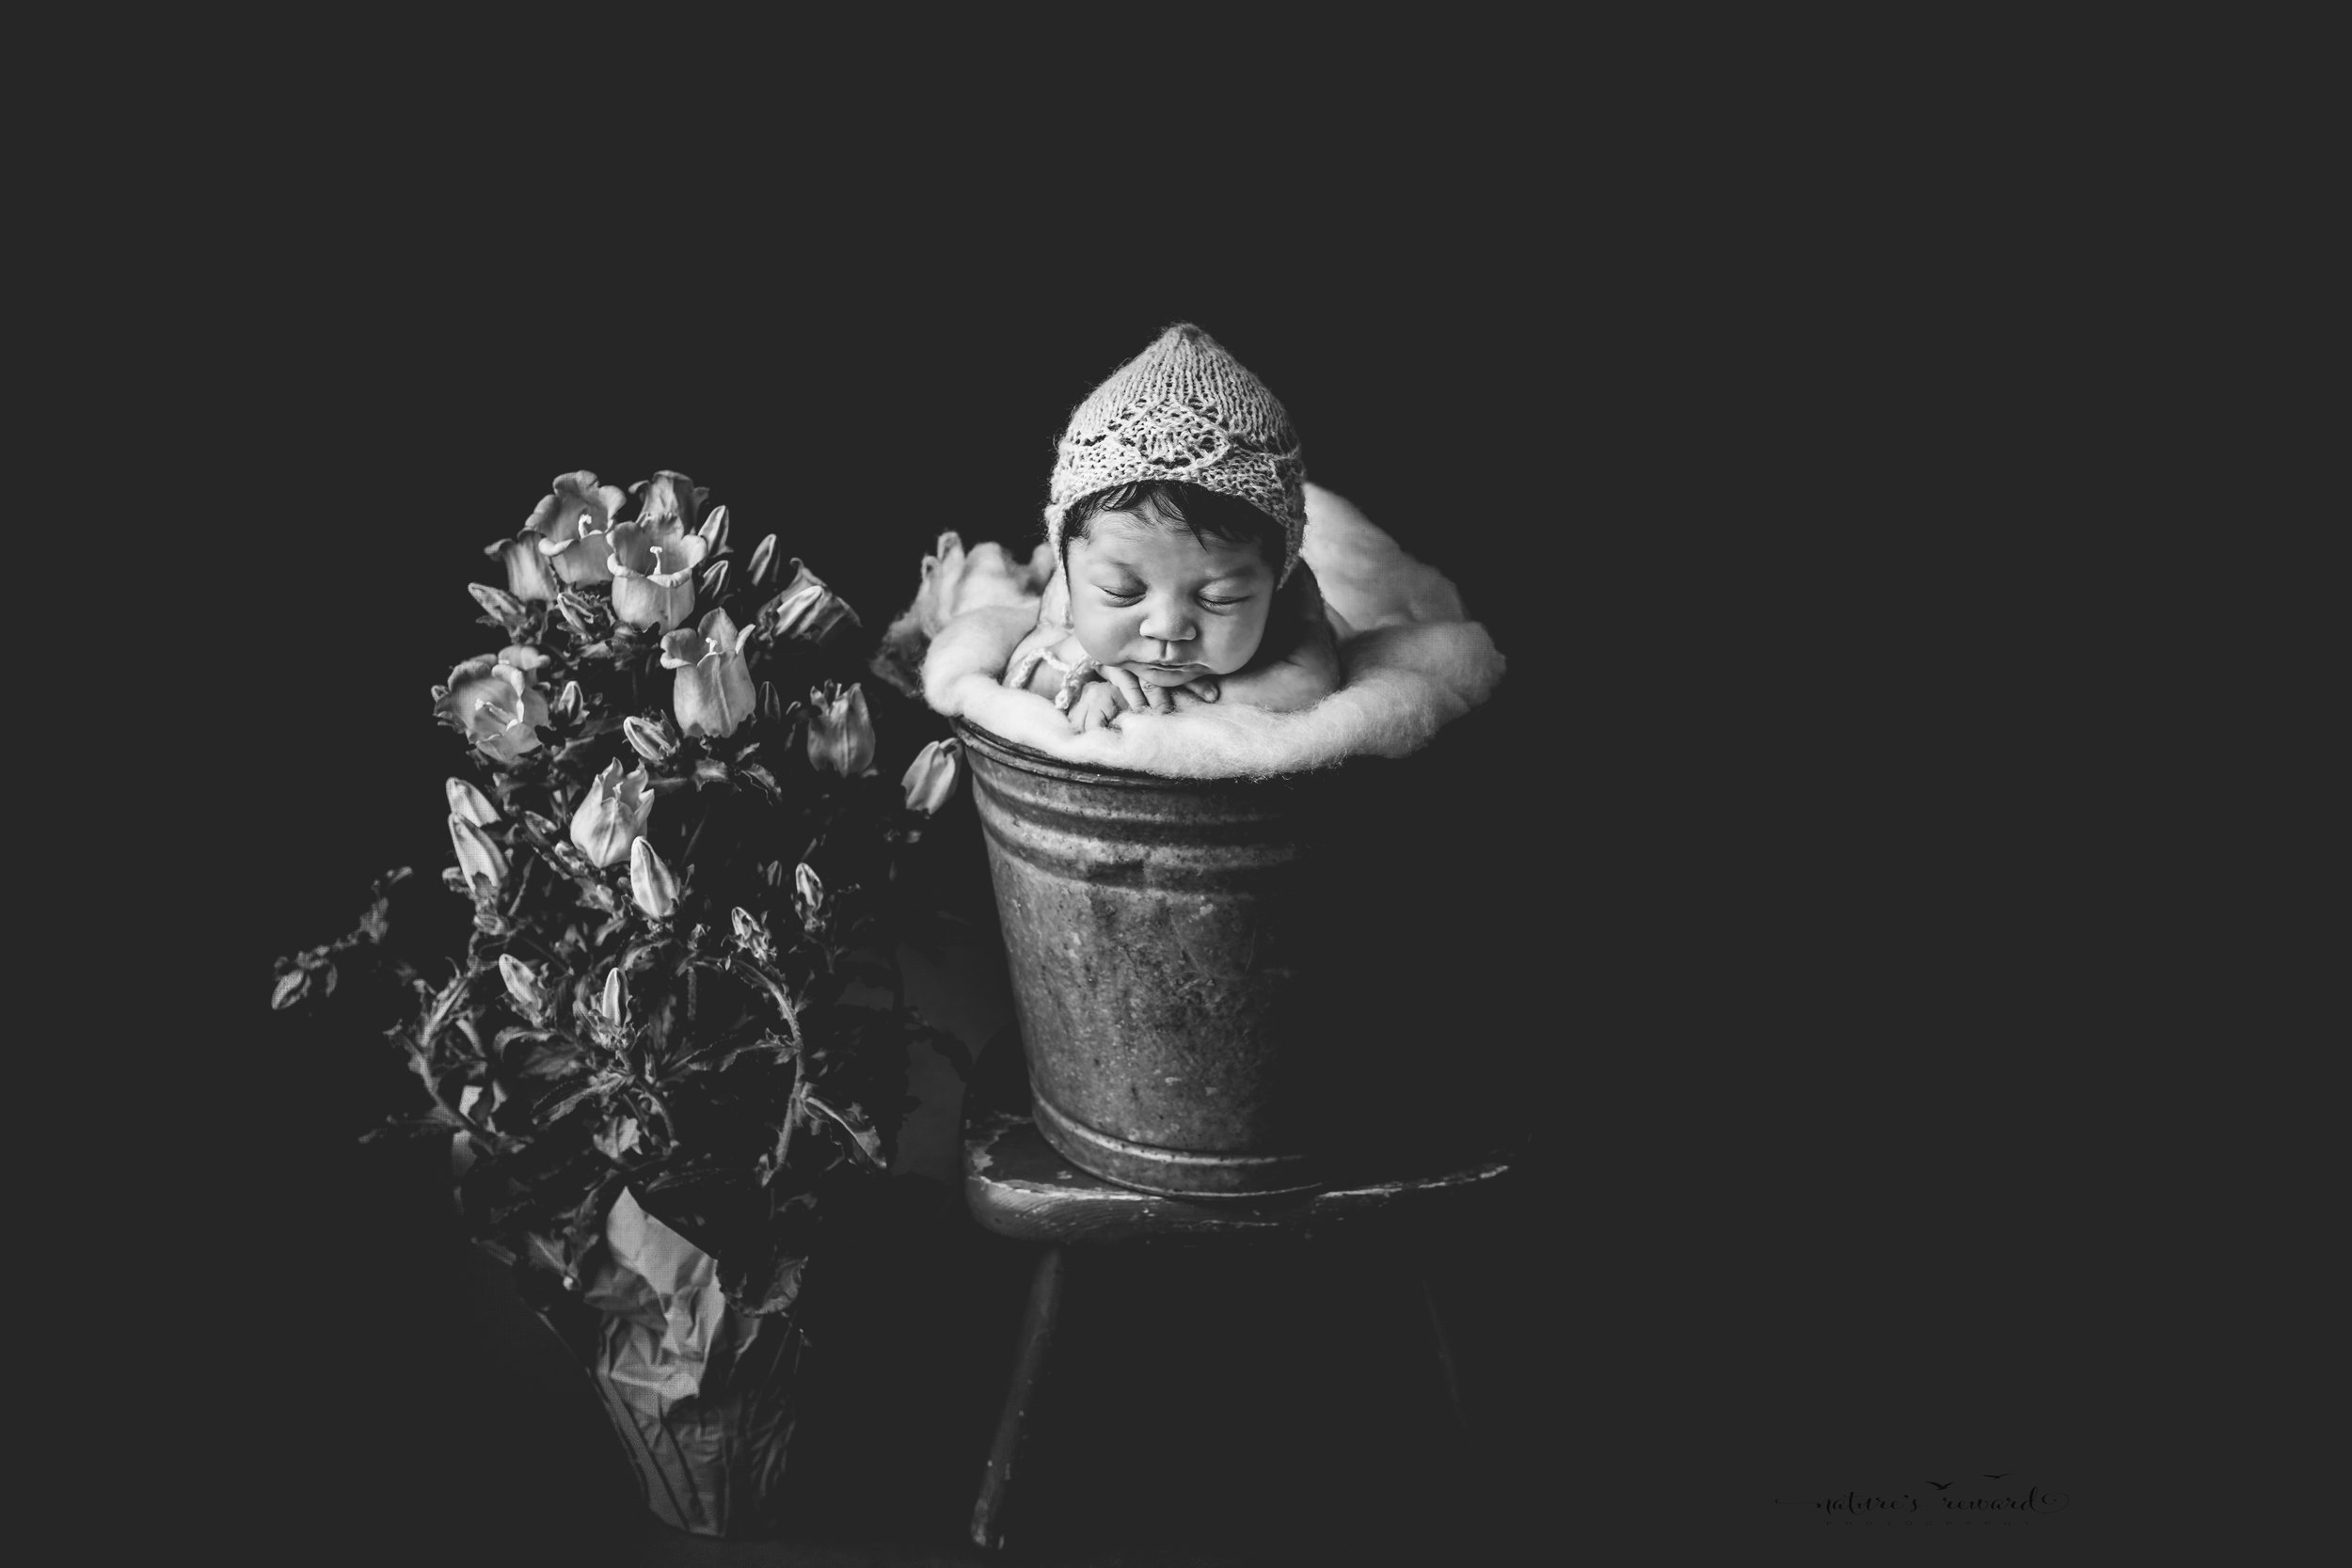 A black and white portrait of newborn baby girl wearing a pink bonnet in a bucket next to potted flowers, a portrait by Nature's Reward Photography.